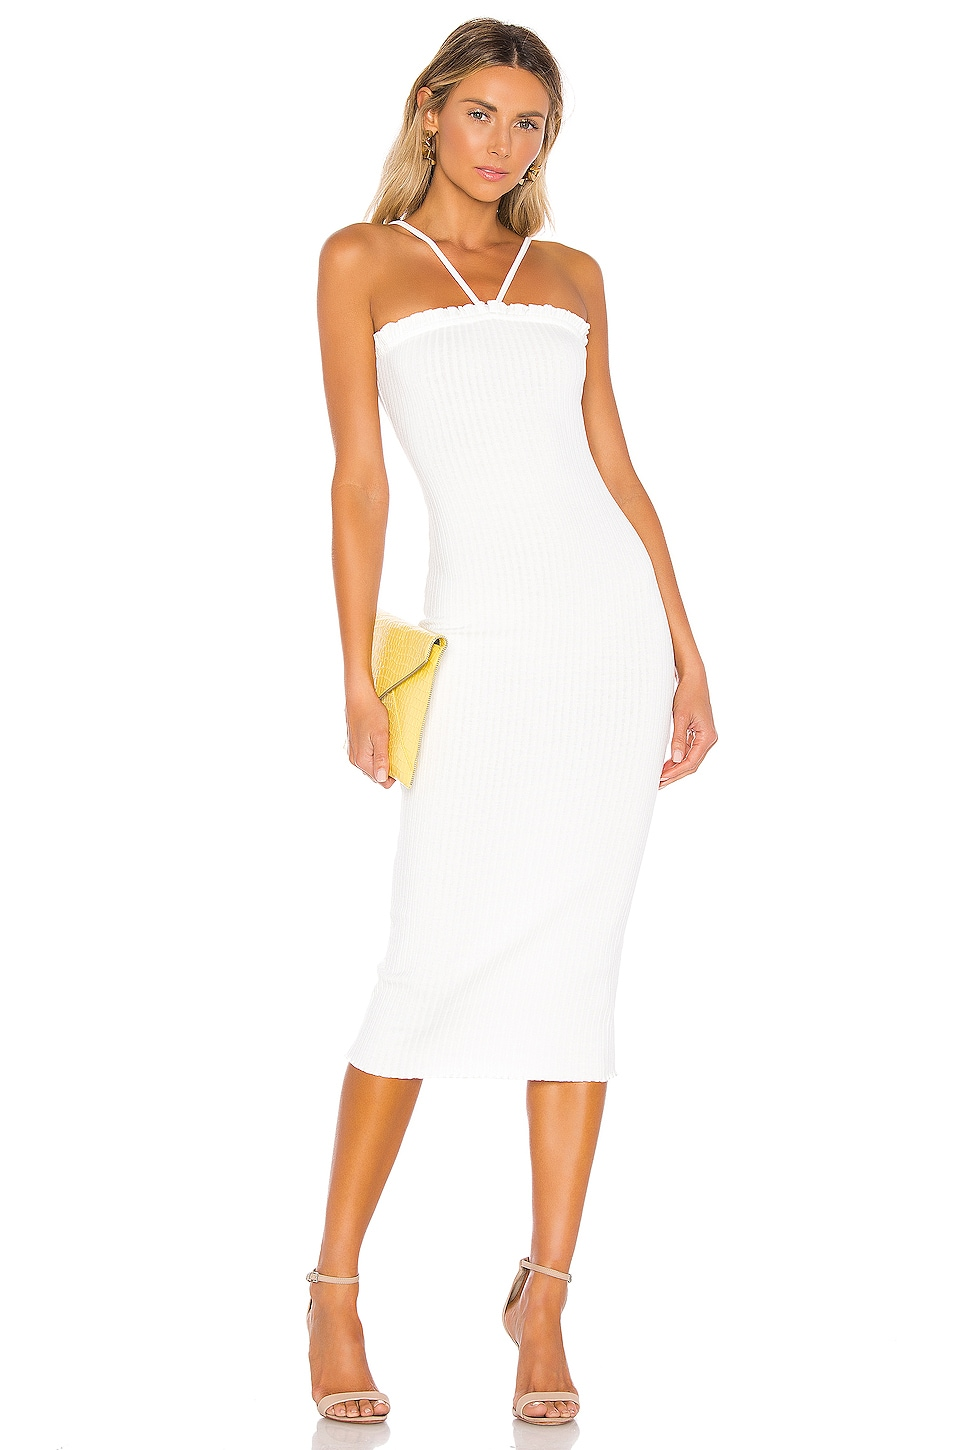 Privacy Please Escondido Midi Dress in Ivory